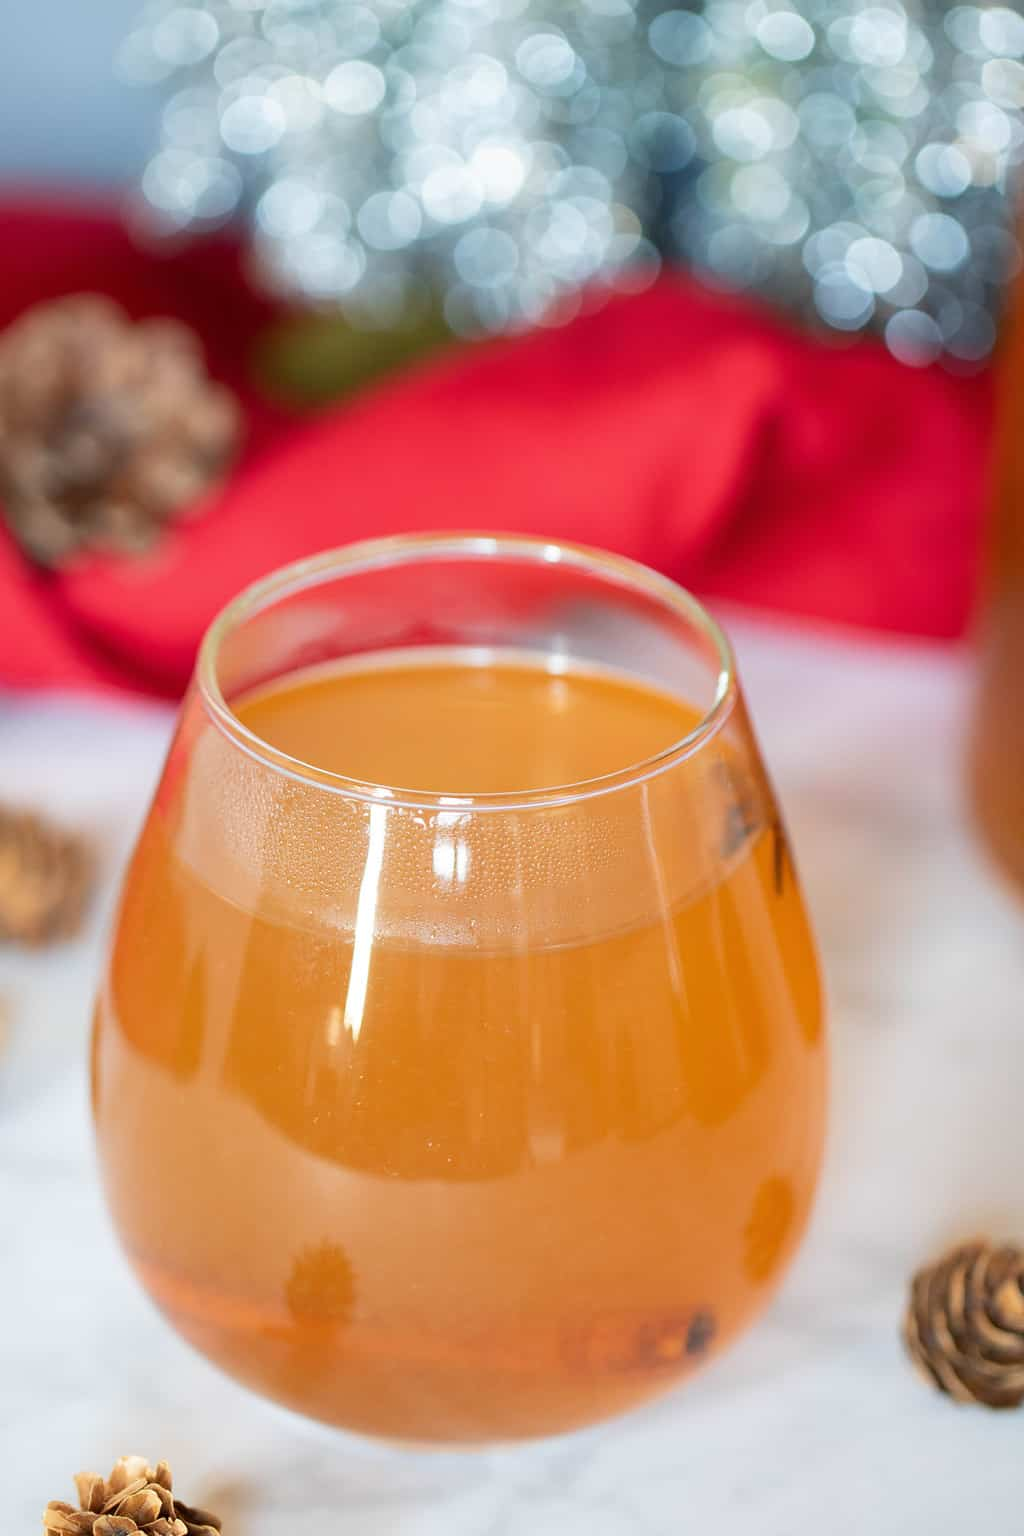 Homemade Slow Cooker Apple Cider